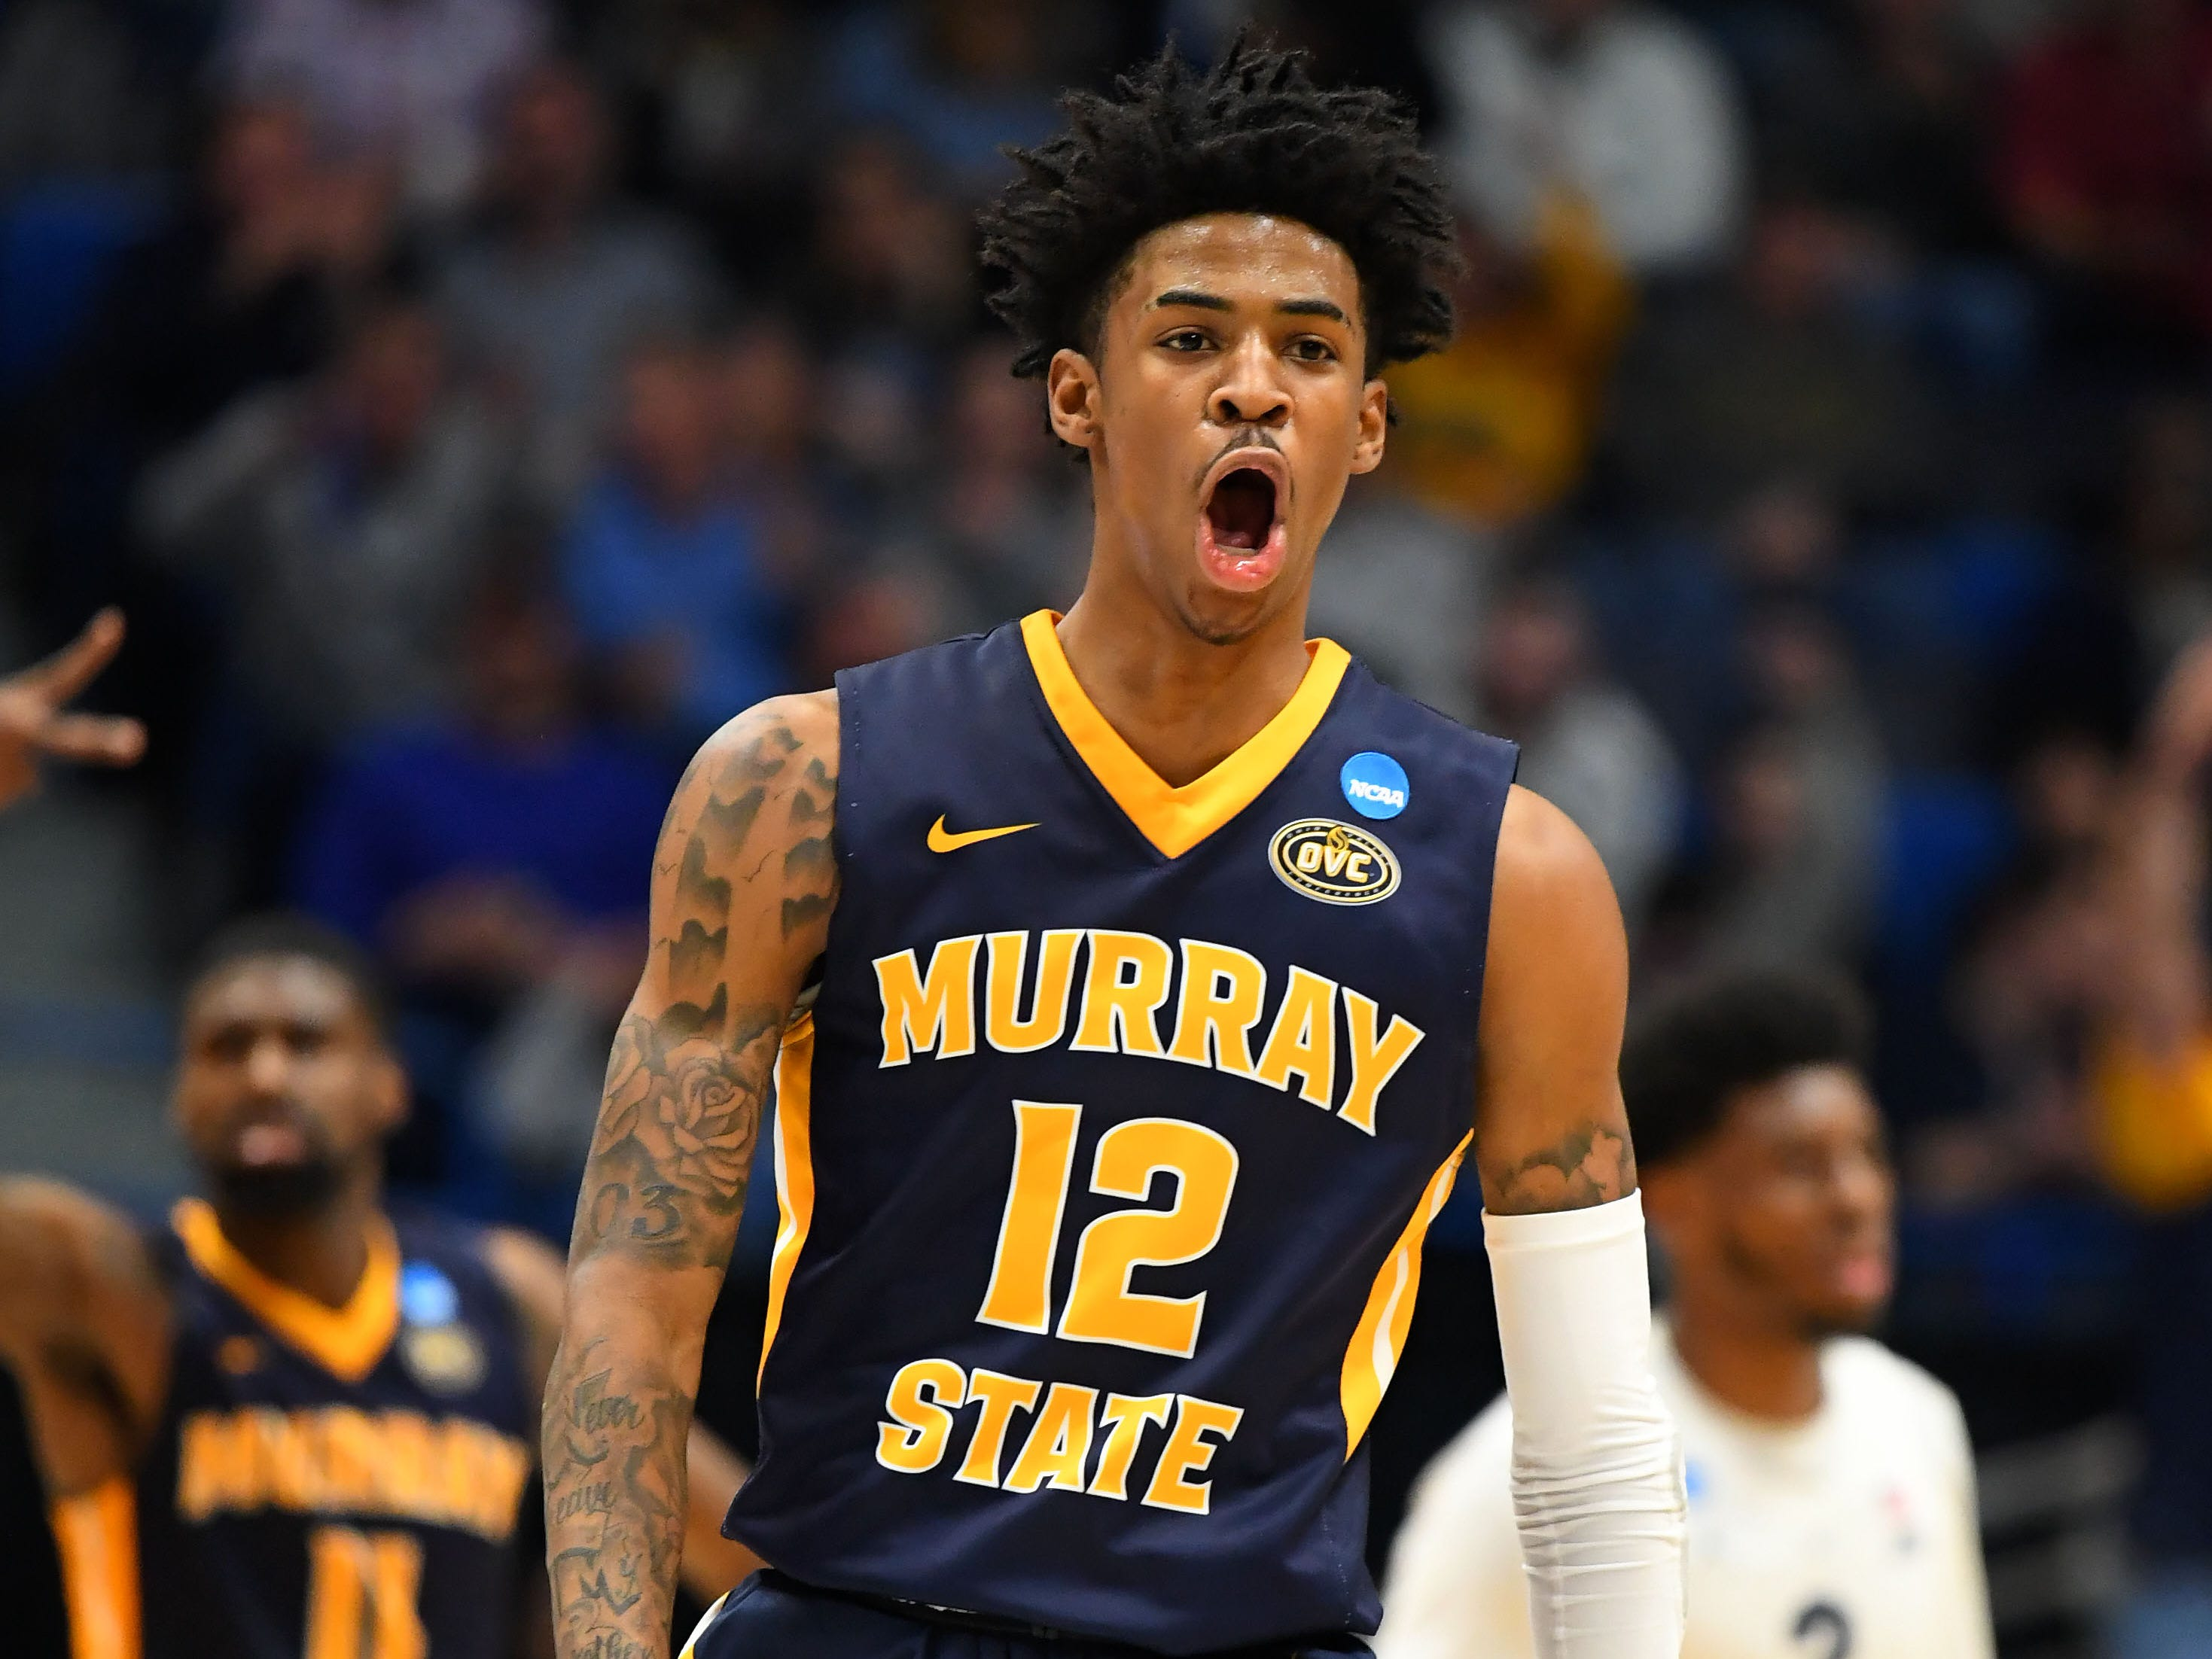 Mar 21, 2019; Hartford, CT, USA; Murray State Racers guard Ja Morant (12) reacts to a score against the Marquette Golden Eagles during the first half in the first round of the 2019 NCAA Tournament at XL Center. Mandatory Credit: Robert Deutsch-USA TODAY Sports